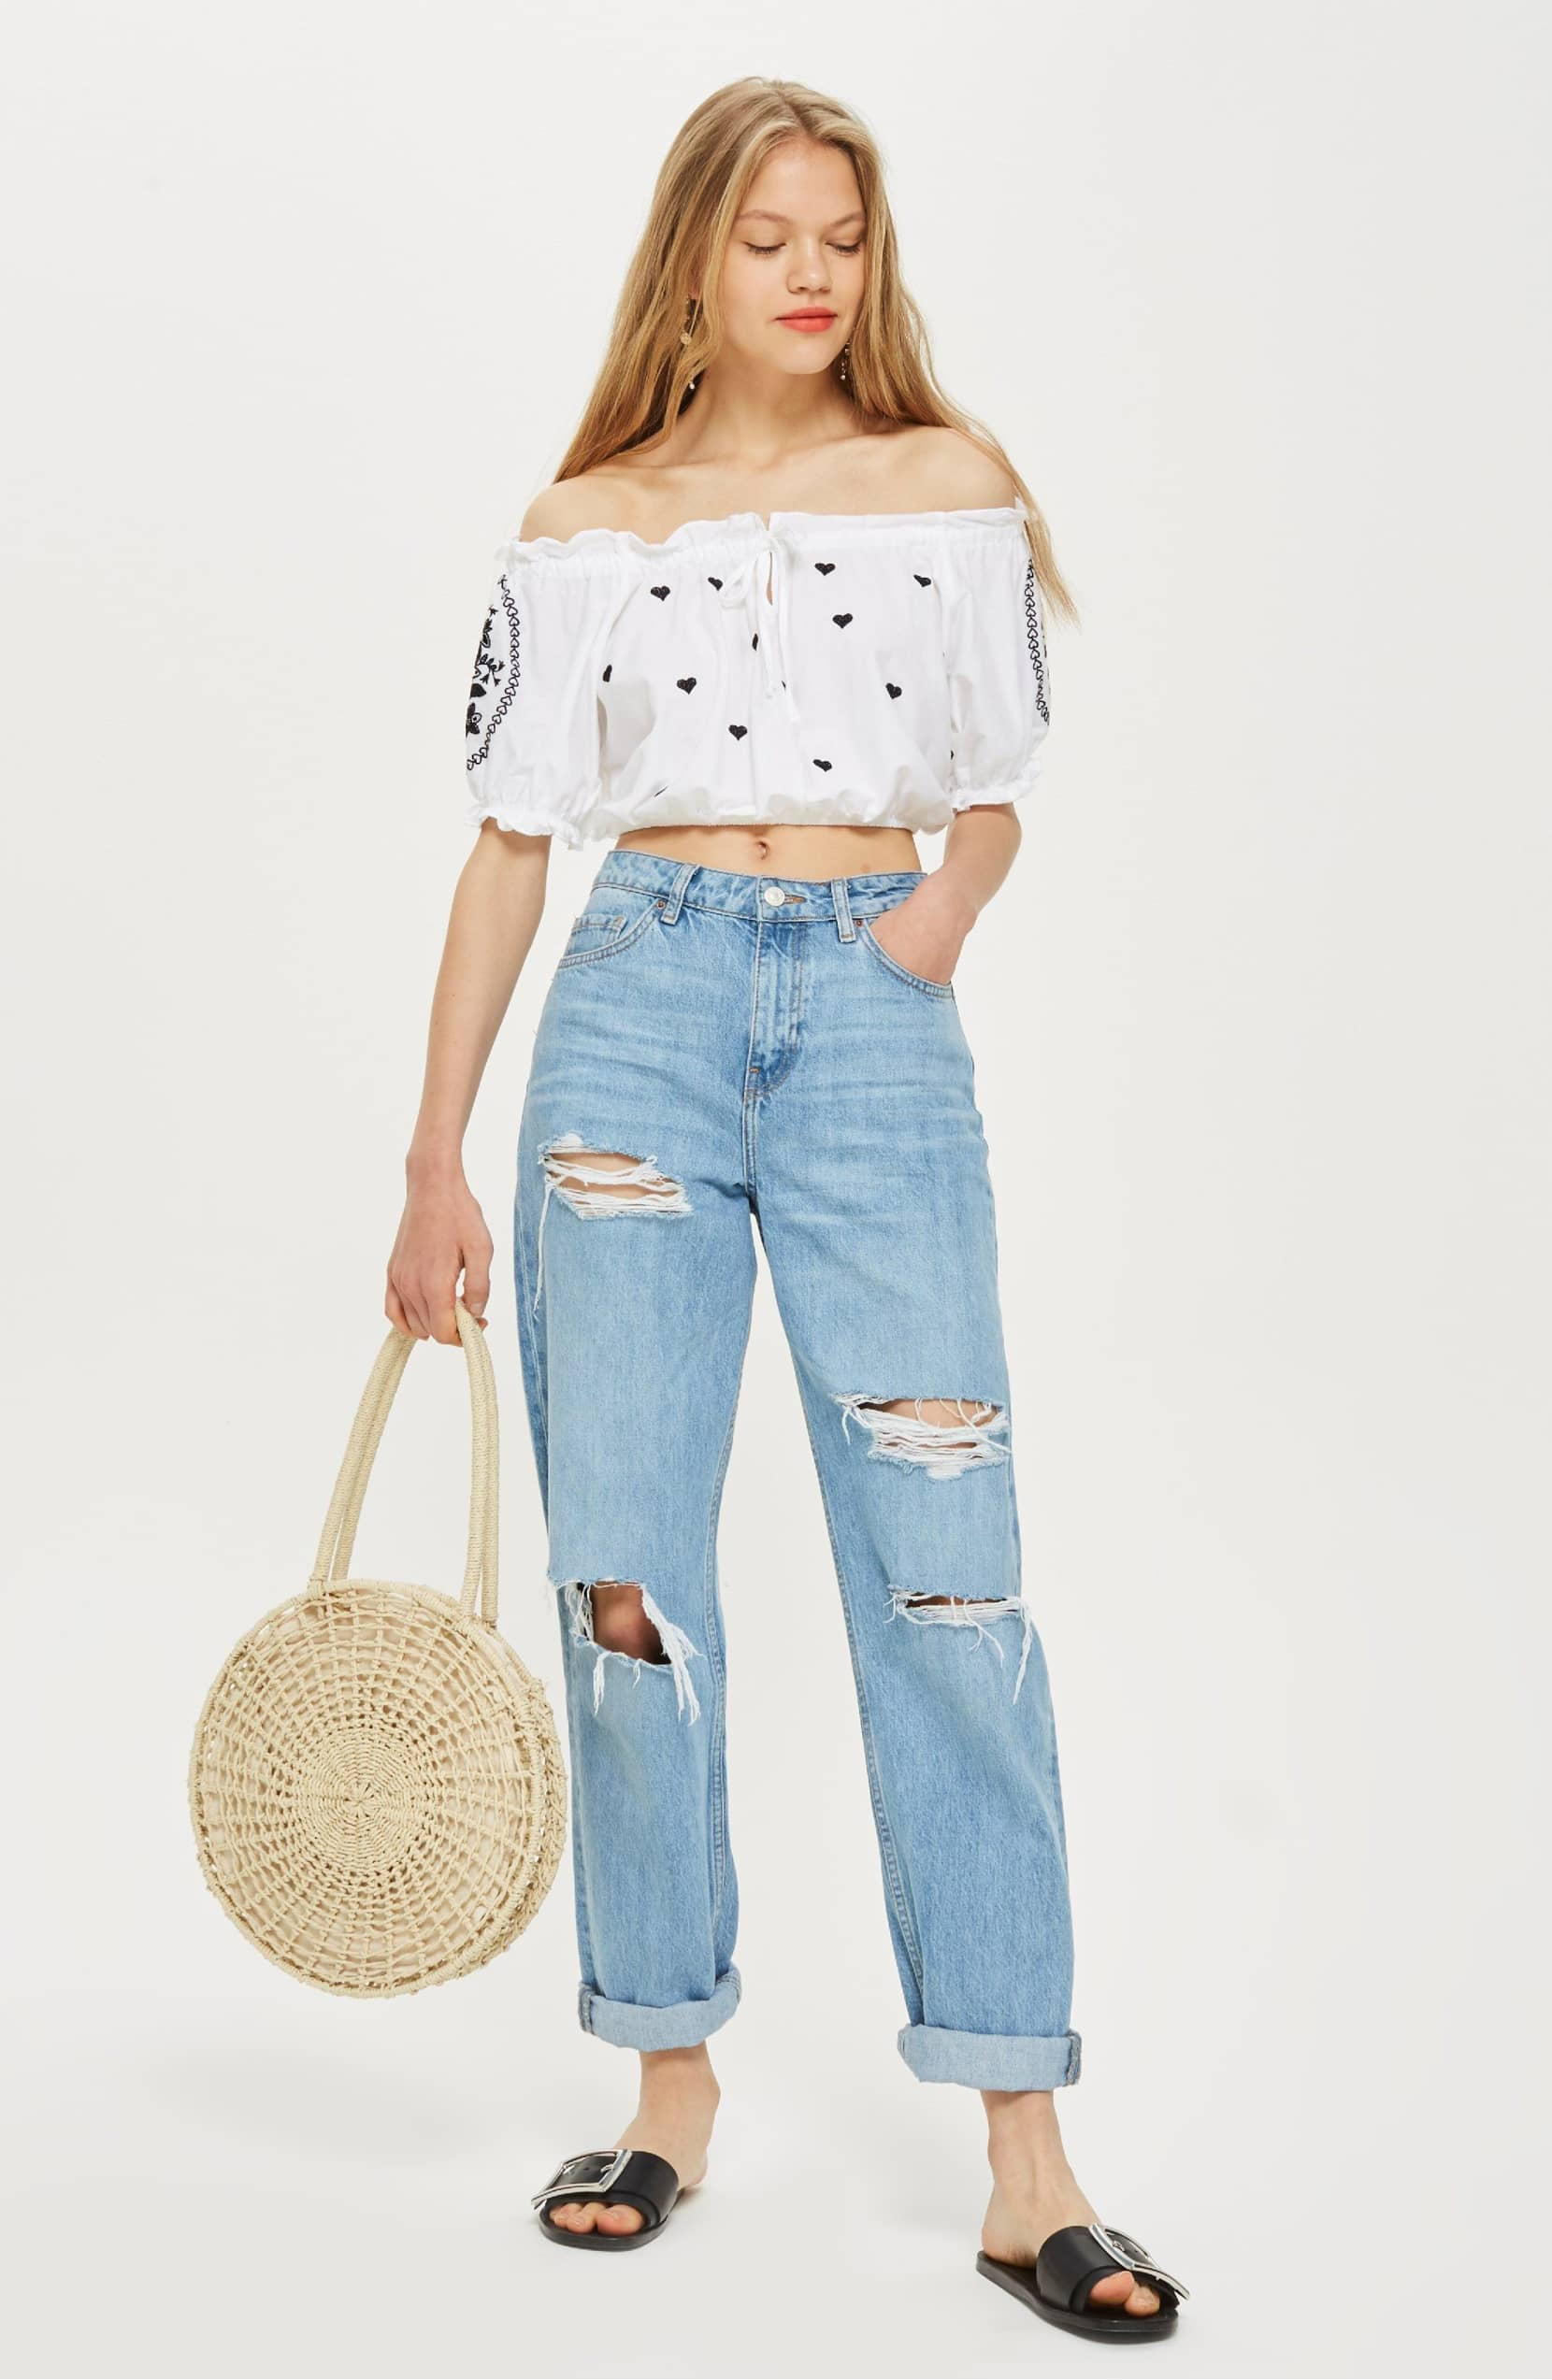 Size XS Topshop Gypsy Embroidered Crop Top Fit 0